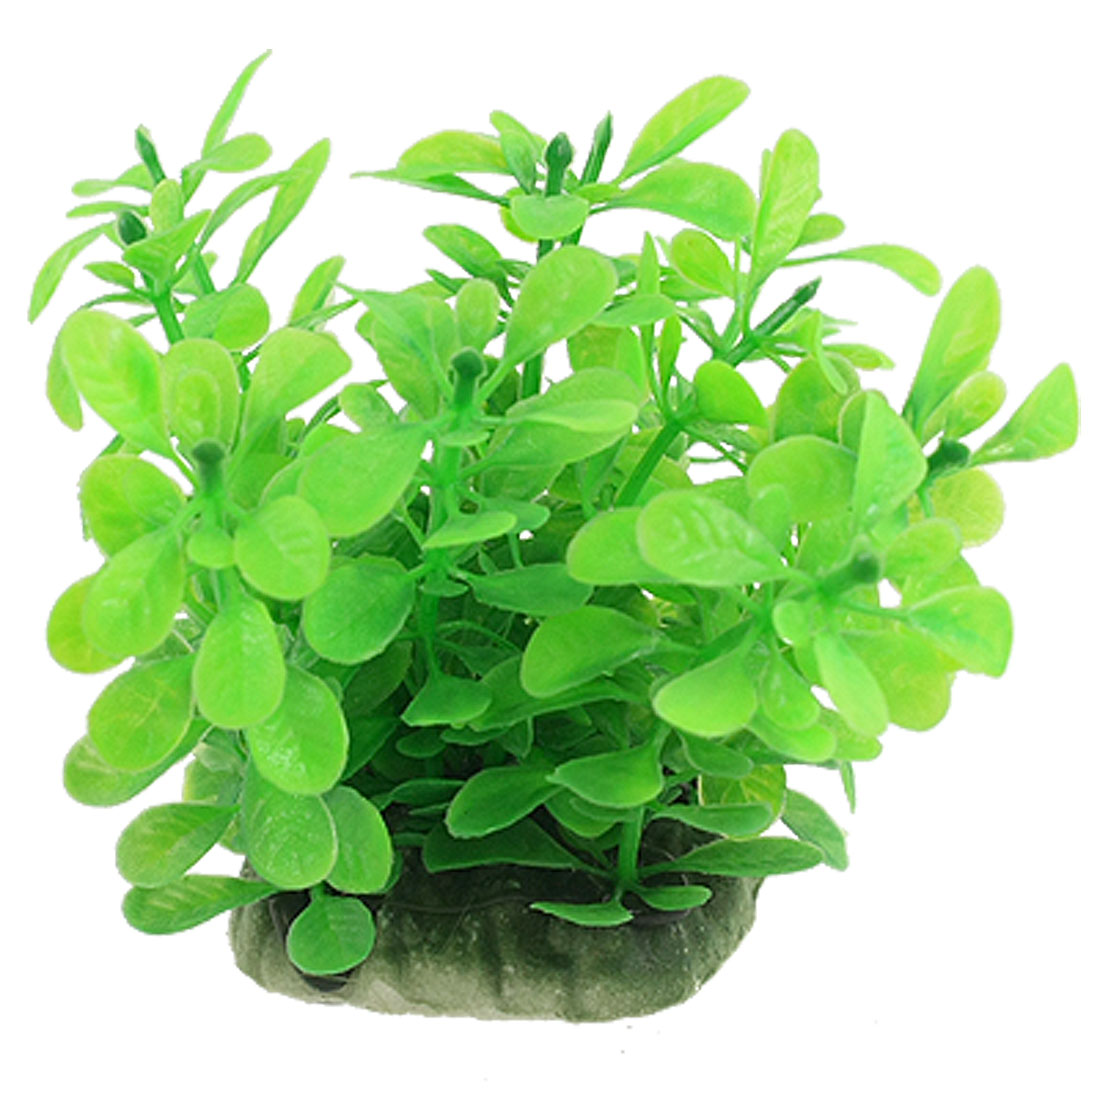 Fish Tank Green Oval Leaf Rectangle Base Plastic Plant Decor Aquascaping